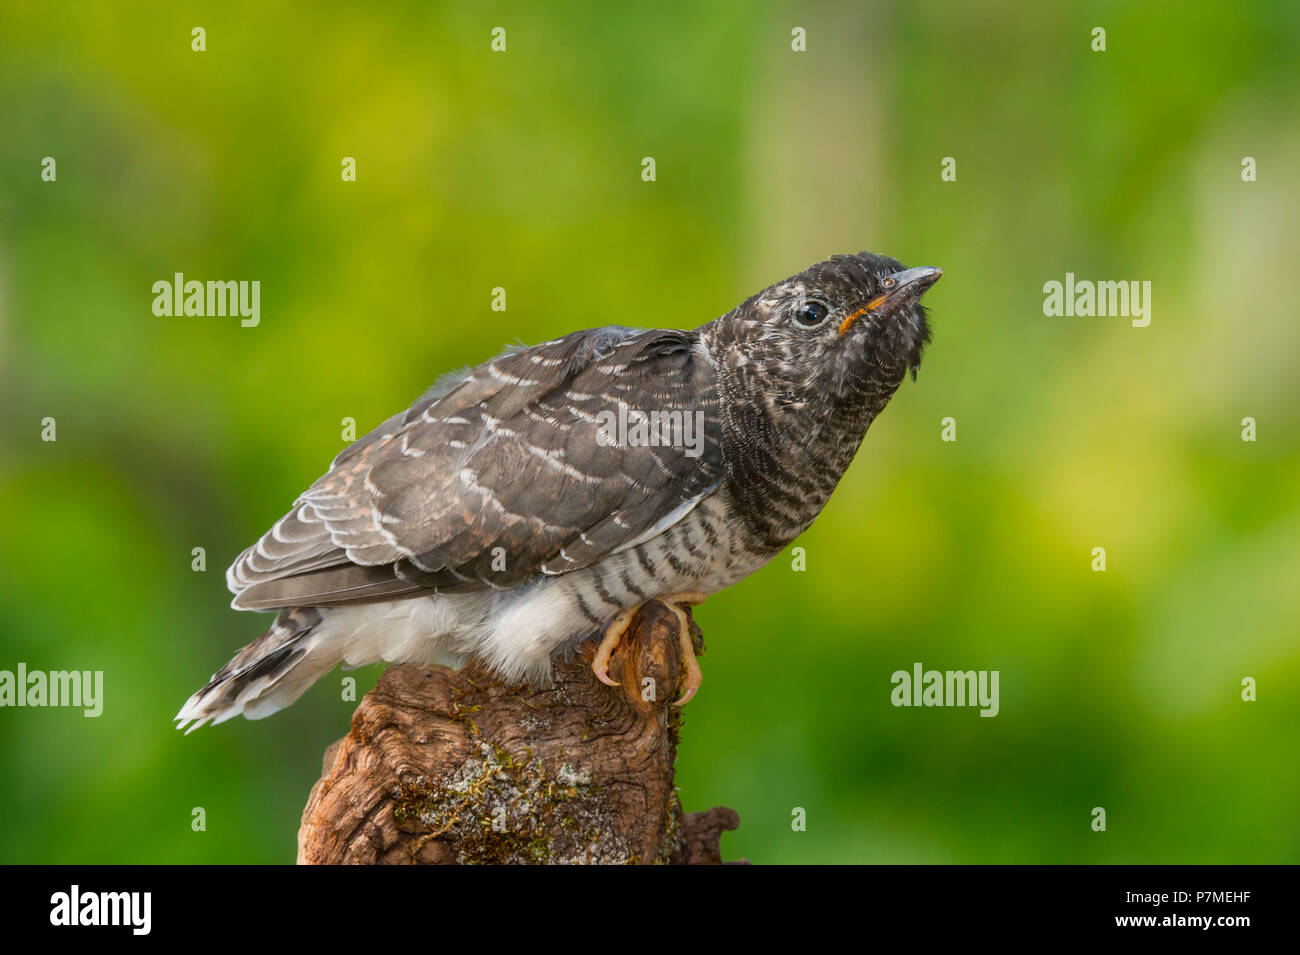 Common Cuckoo on the branch, Trentino Alto-Adige, Italy Stock Photo